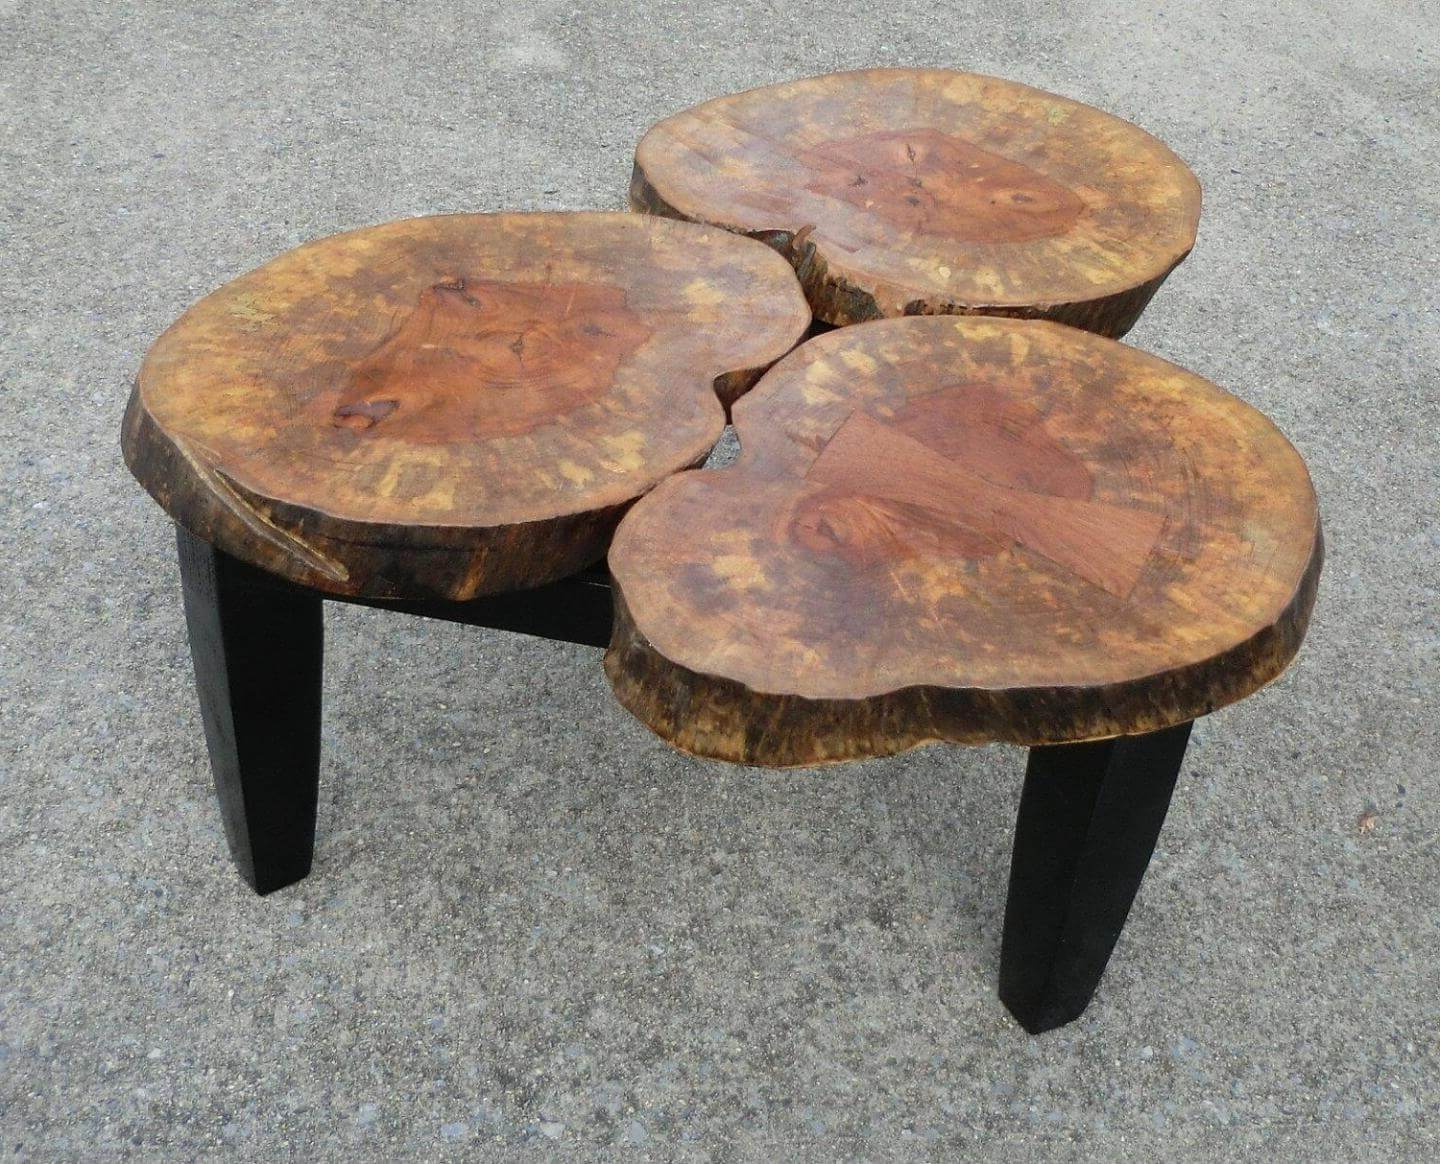 Oslo Burl Wood Veneer Coffee Tables Intended For Current Amish Tree Stump Coffee Tables : America Underwater Decor – Unique (View 12 of 20)